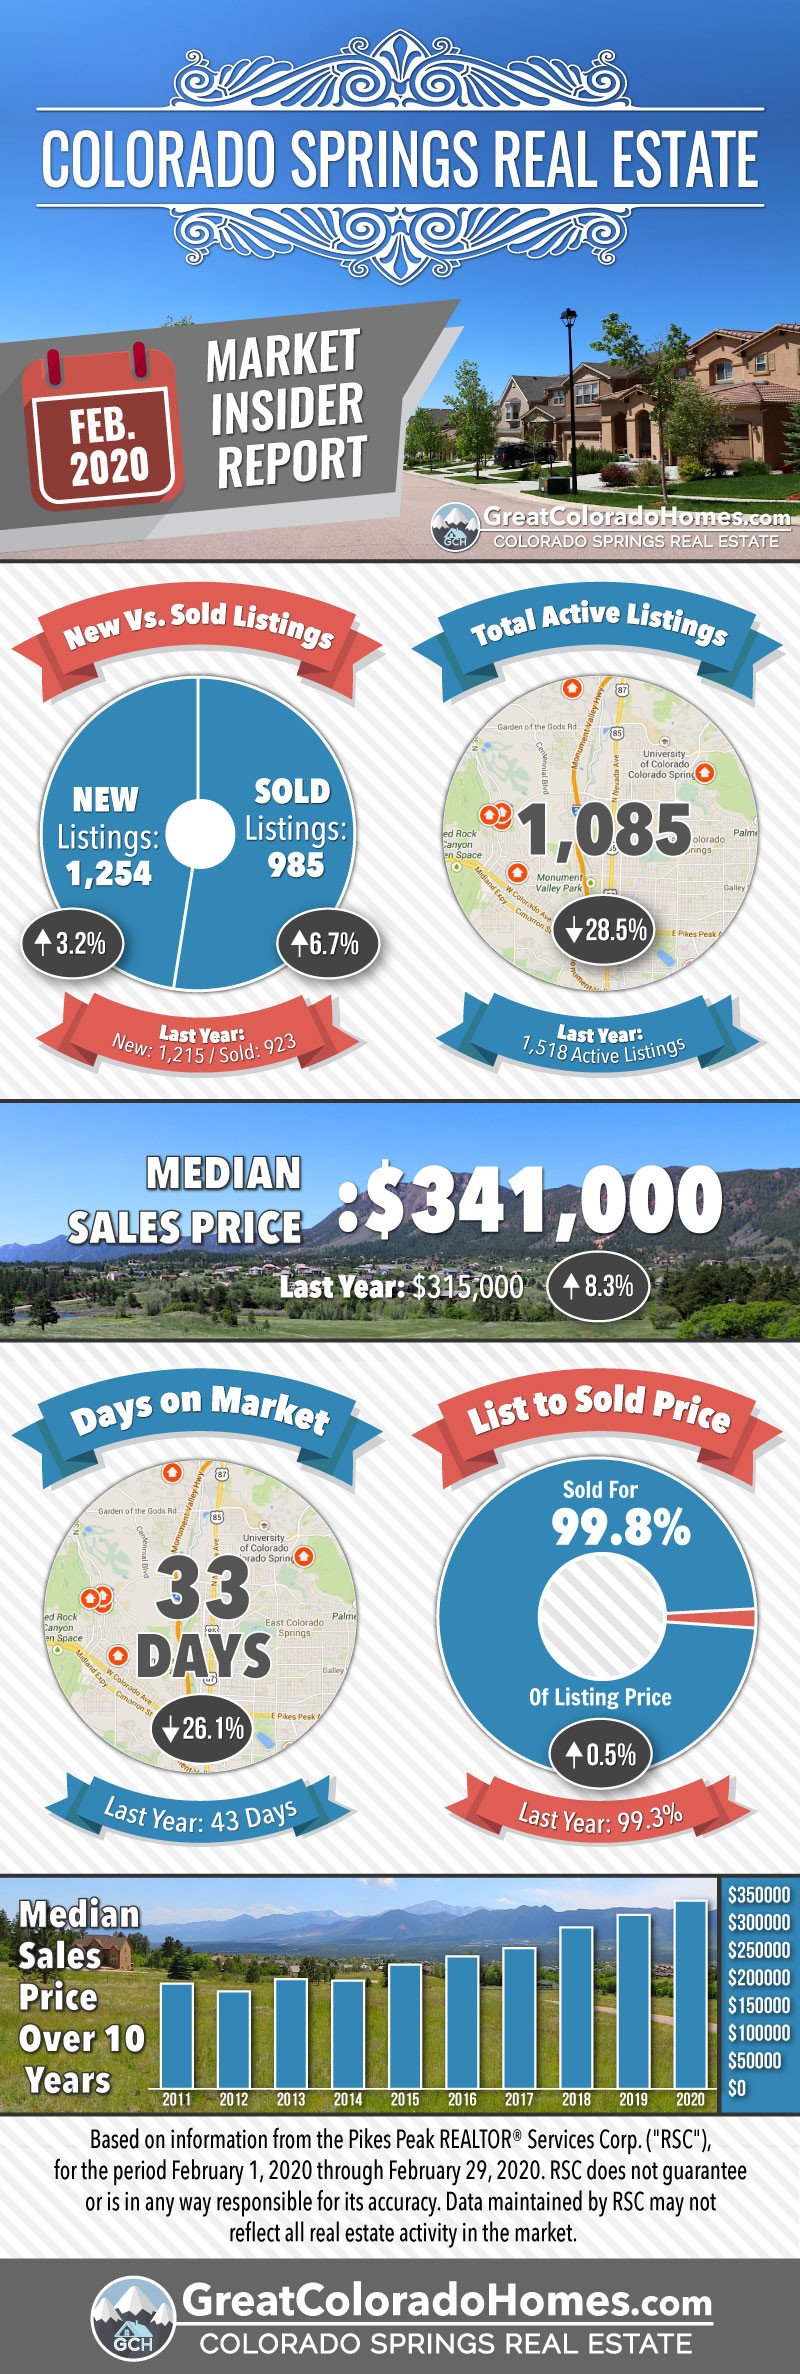 February 2020 Colorado Springs Real Estate Market Statistics Infographic